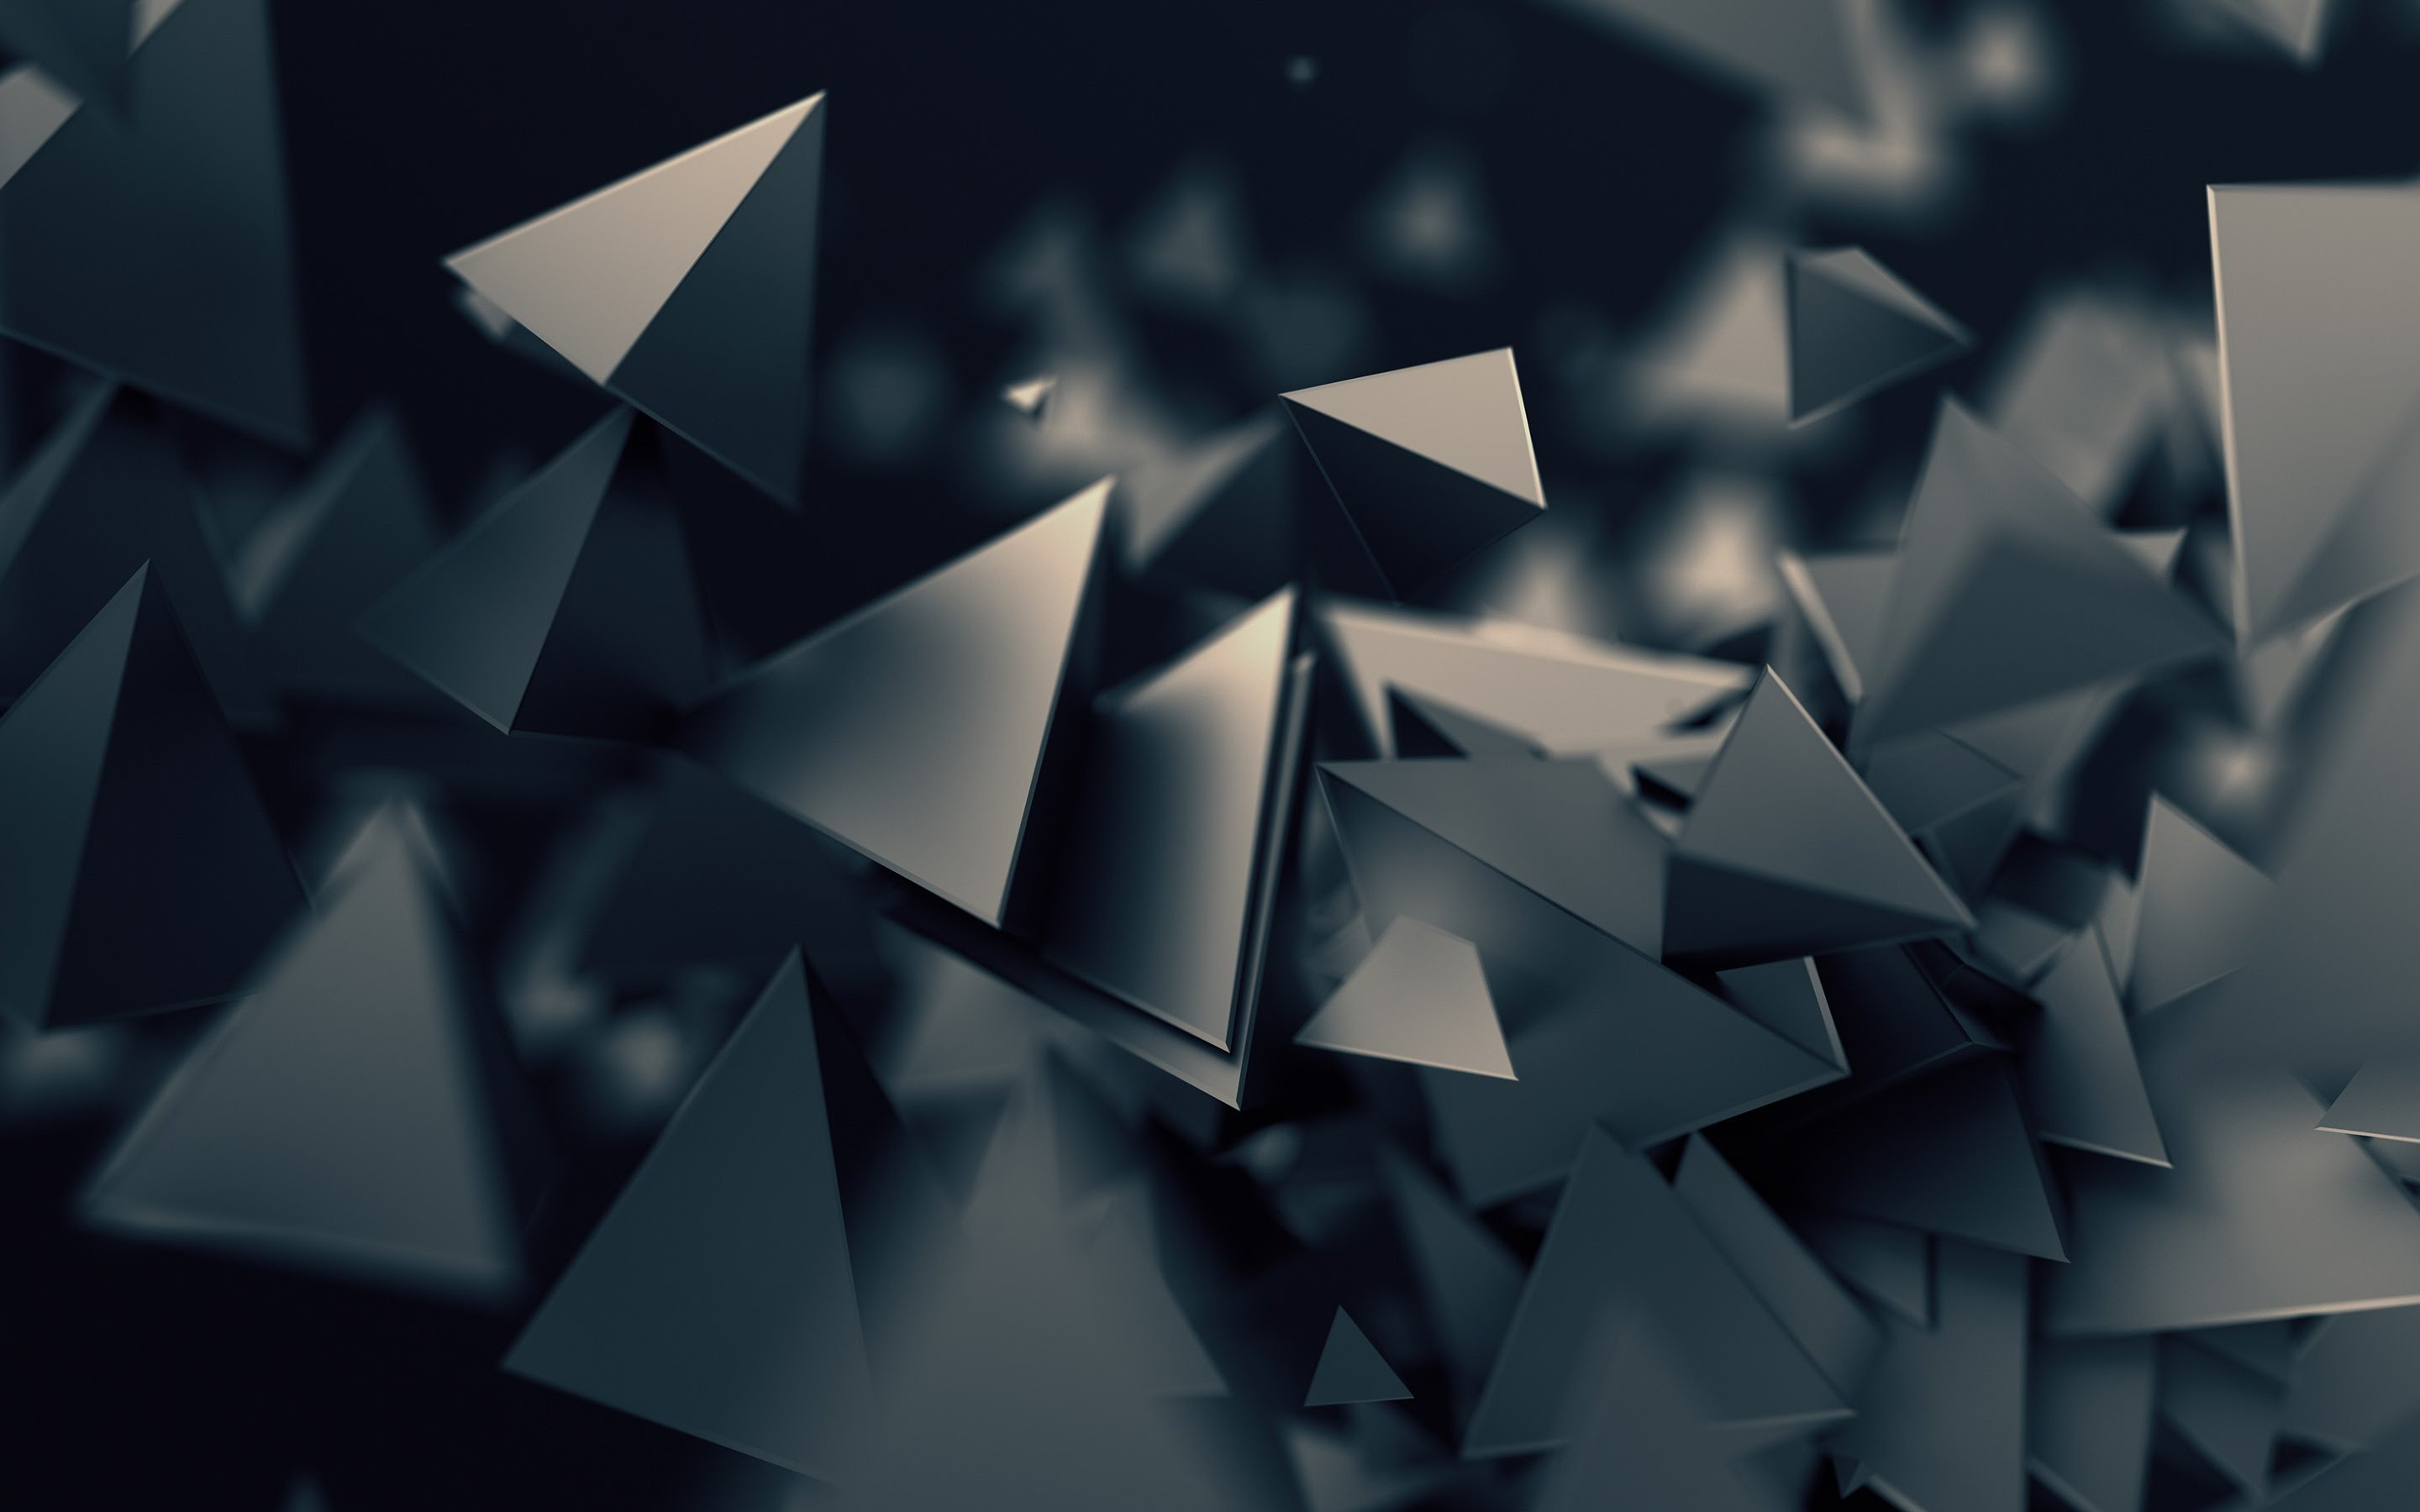 Triangular prisms | 2880x1800 wallpaper